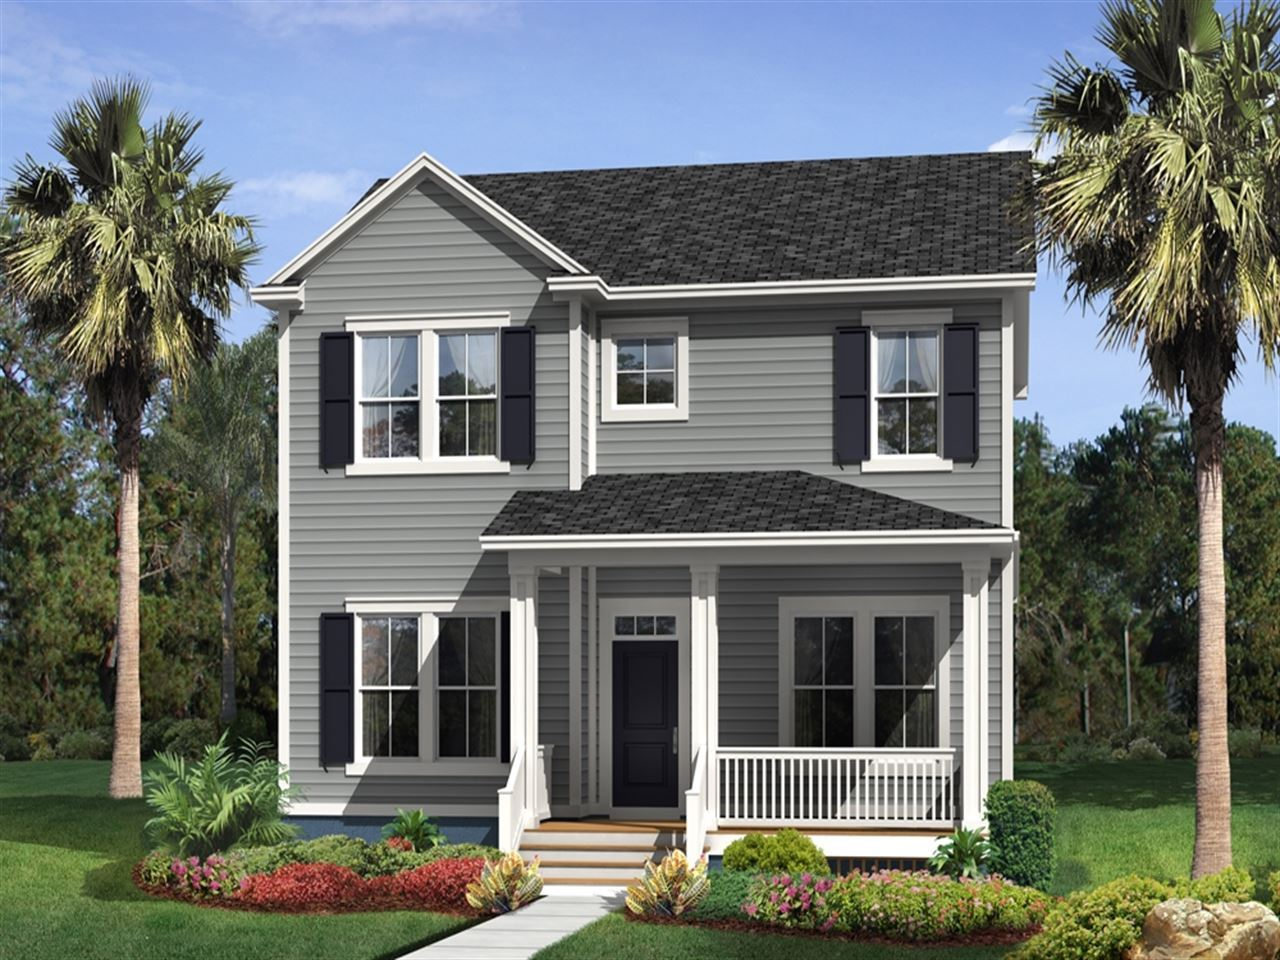 Carolina Park by Ryland Homes